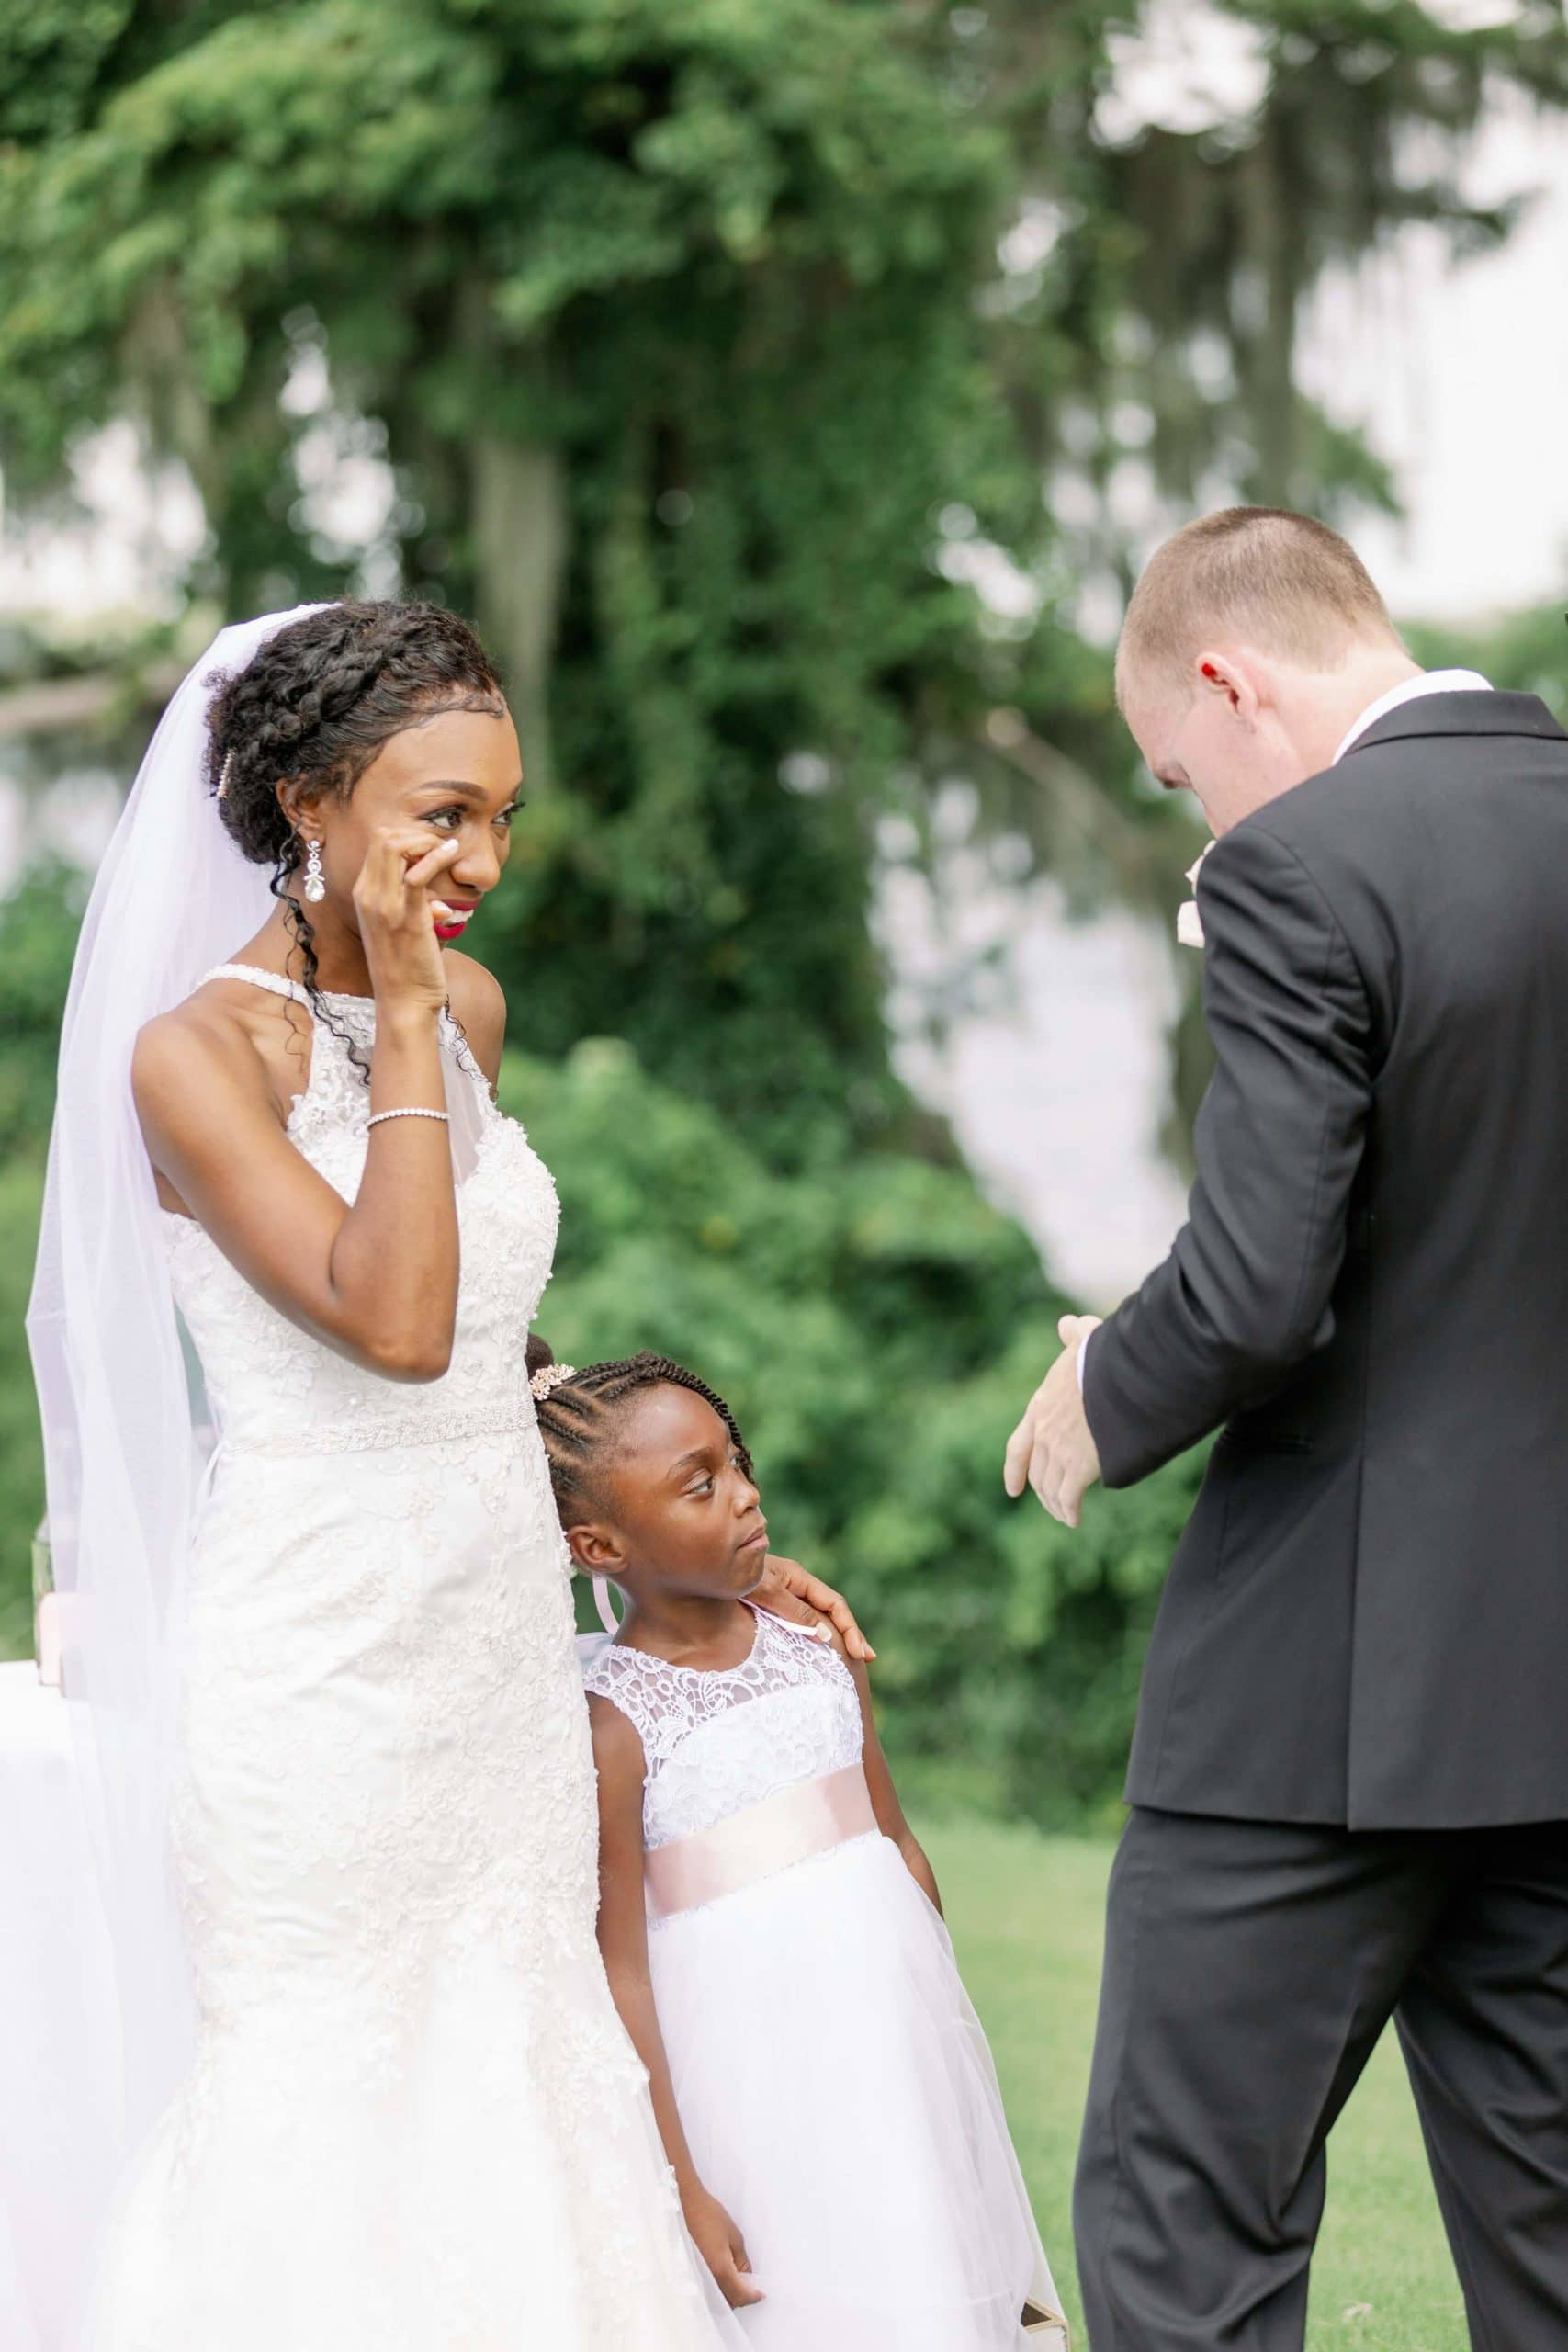 Bride, groom and flower girl during ceremony